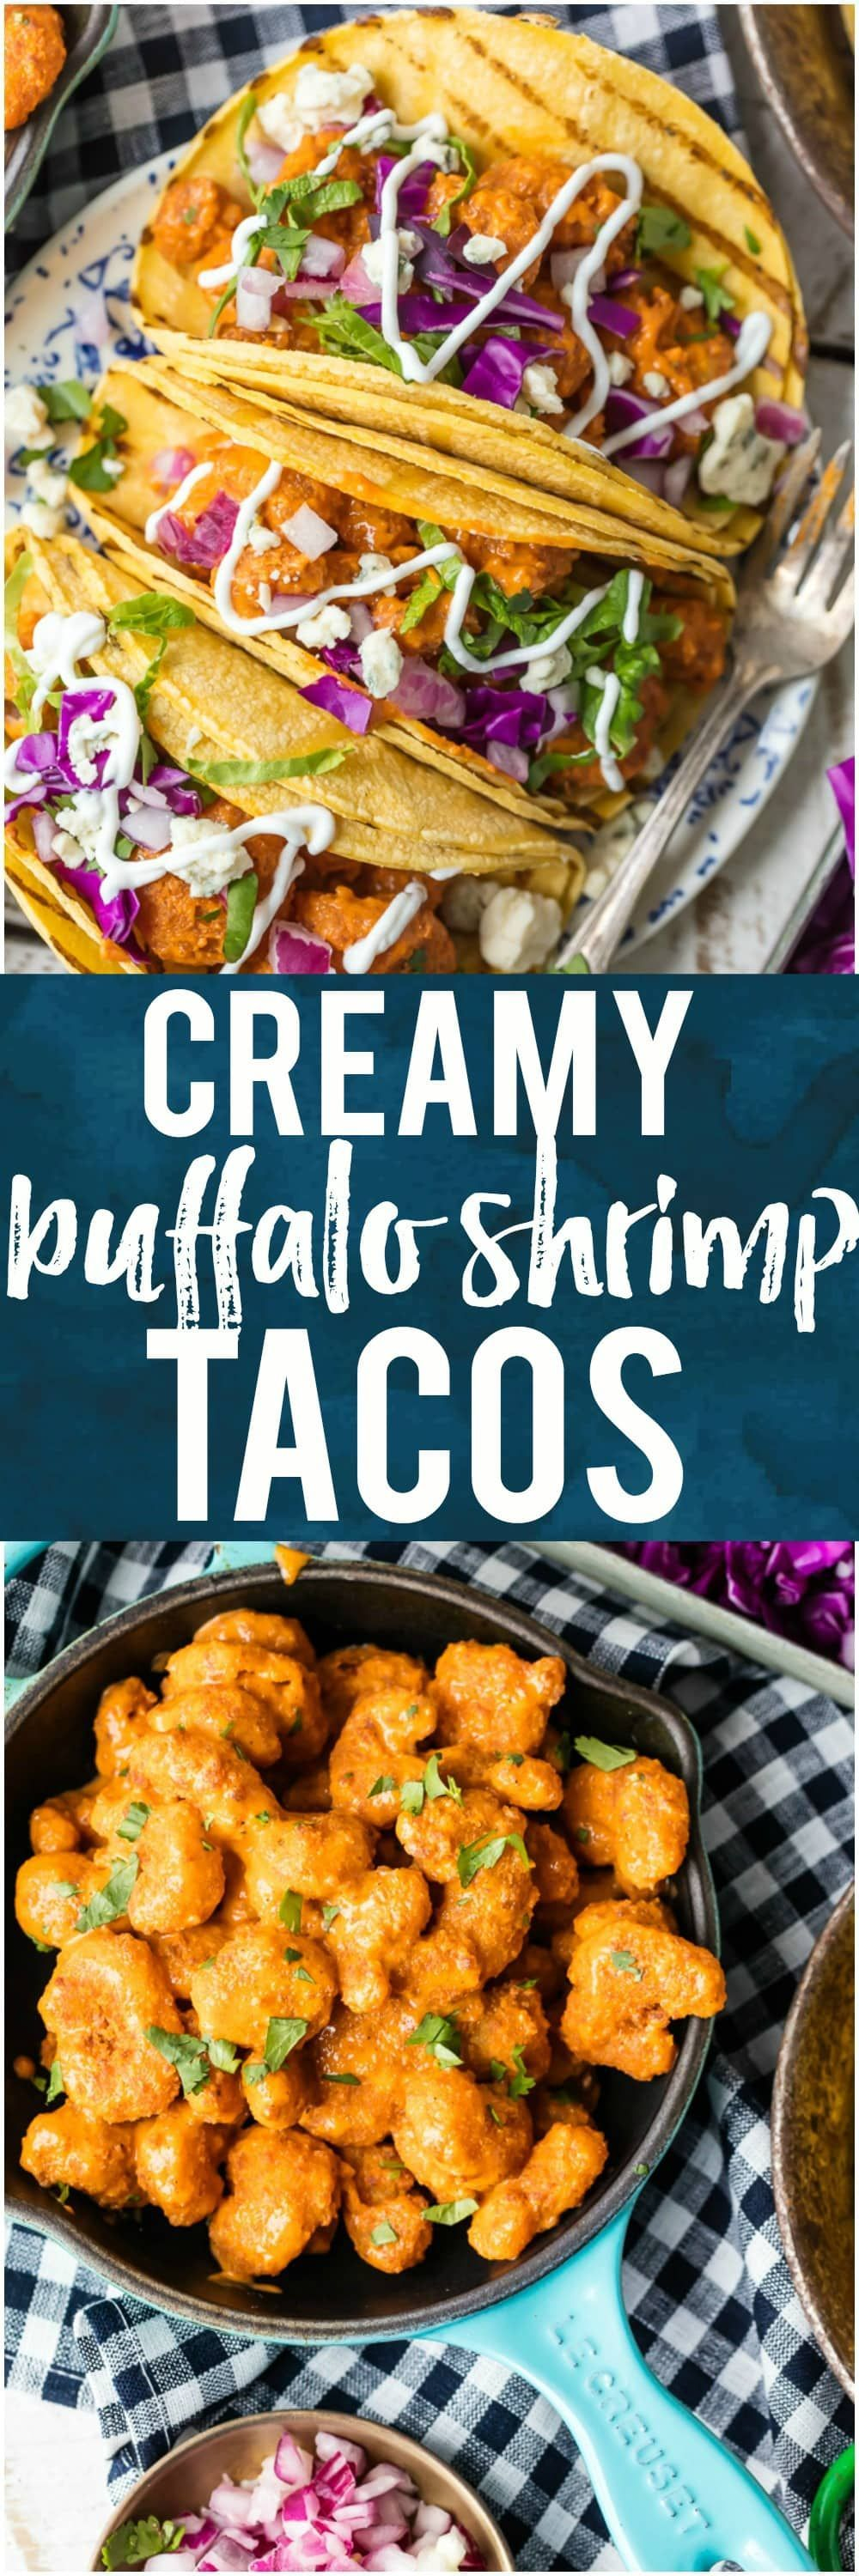 Creamy Buffalo Shrimp Tacos #buffaloshrimp This BUFFALO SHRIMP TACOS RECIPE is tossed in a finger lickin good creamy buffalo sauce and easier than you can even imagine. Perfect for Cinco De Mayo, family night in, or game night with friends! Nothing is better than spicy crispy popcorn shrimp topped with all the fixings and wrapped in a corn tortilla. I'm obsessed. #shrimp #seafood #buffalo #spicy #popcornshrimp #tacos #mexican #cincodemayo #gameday via @beckygallhardin #buffaloshrimp